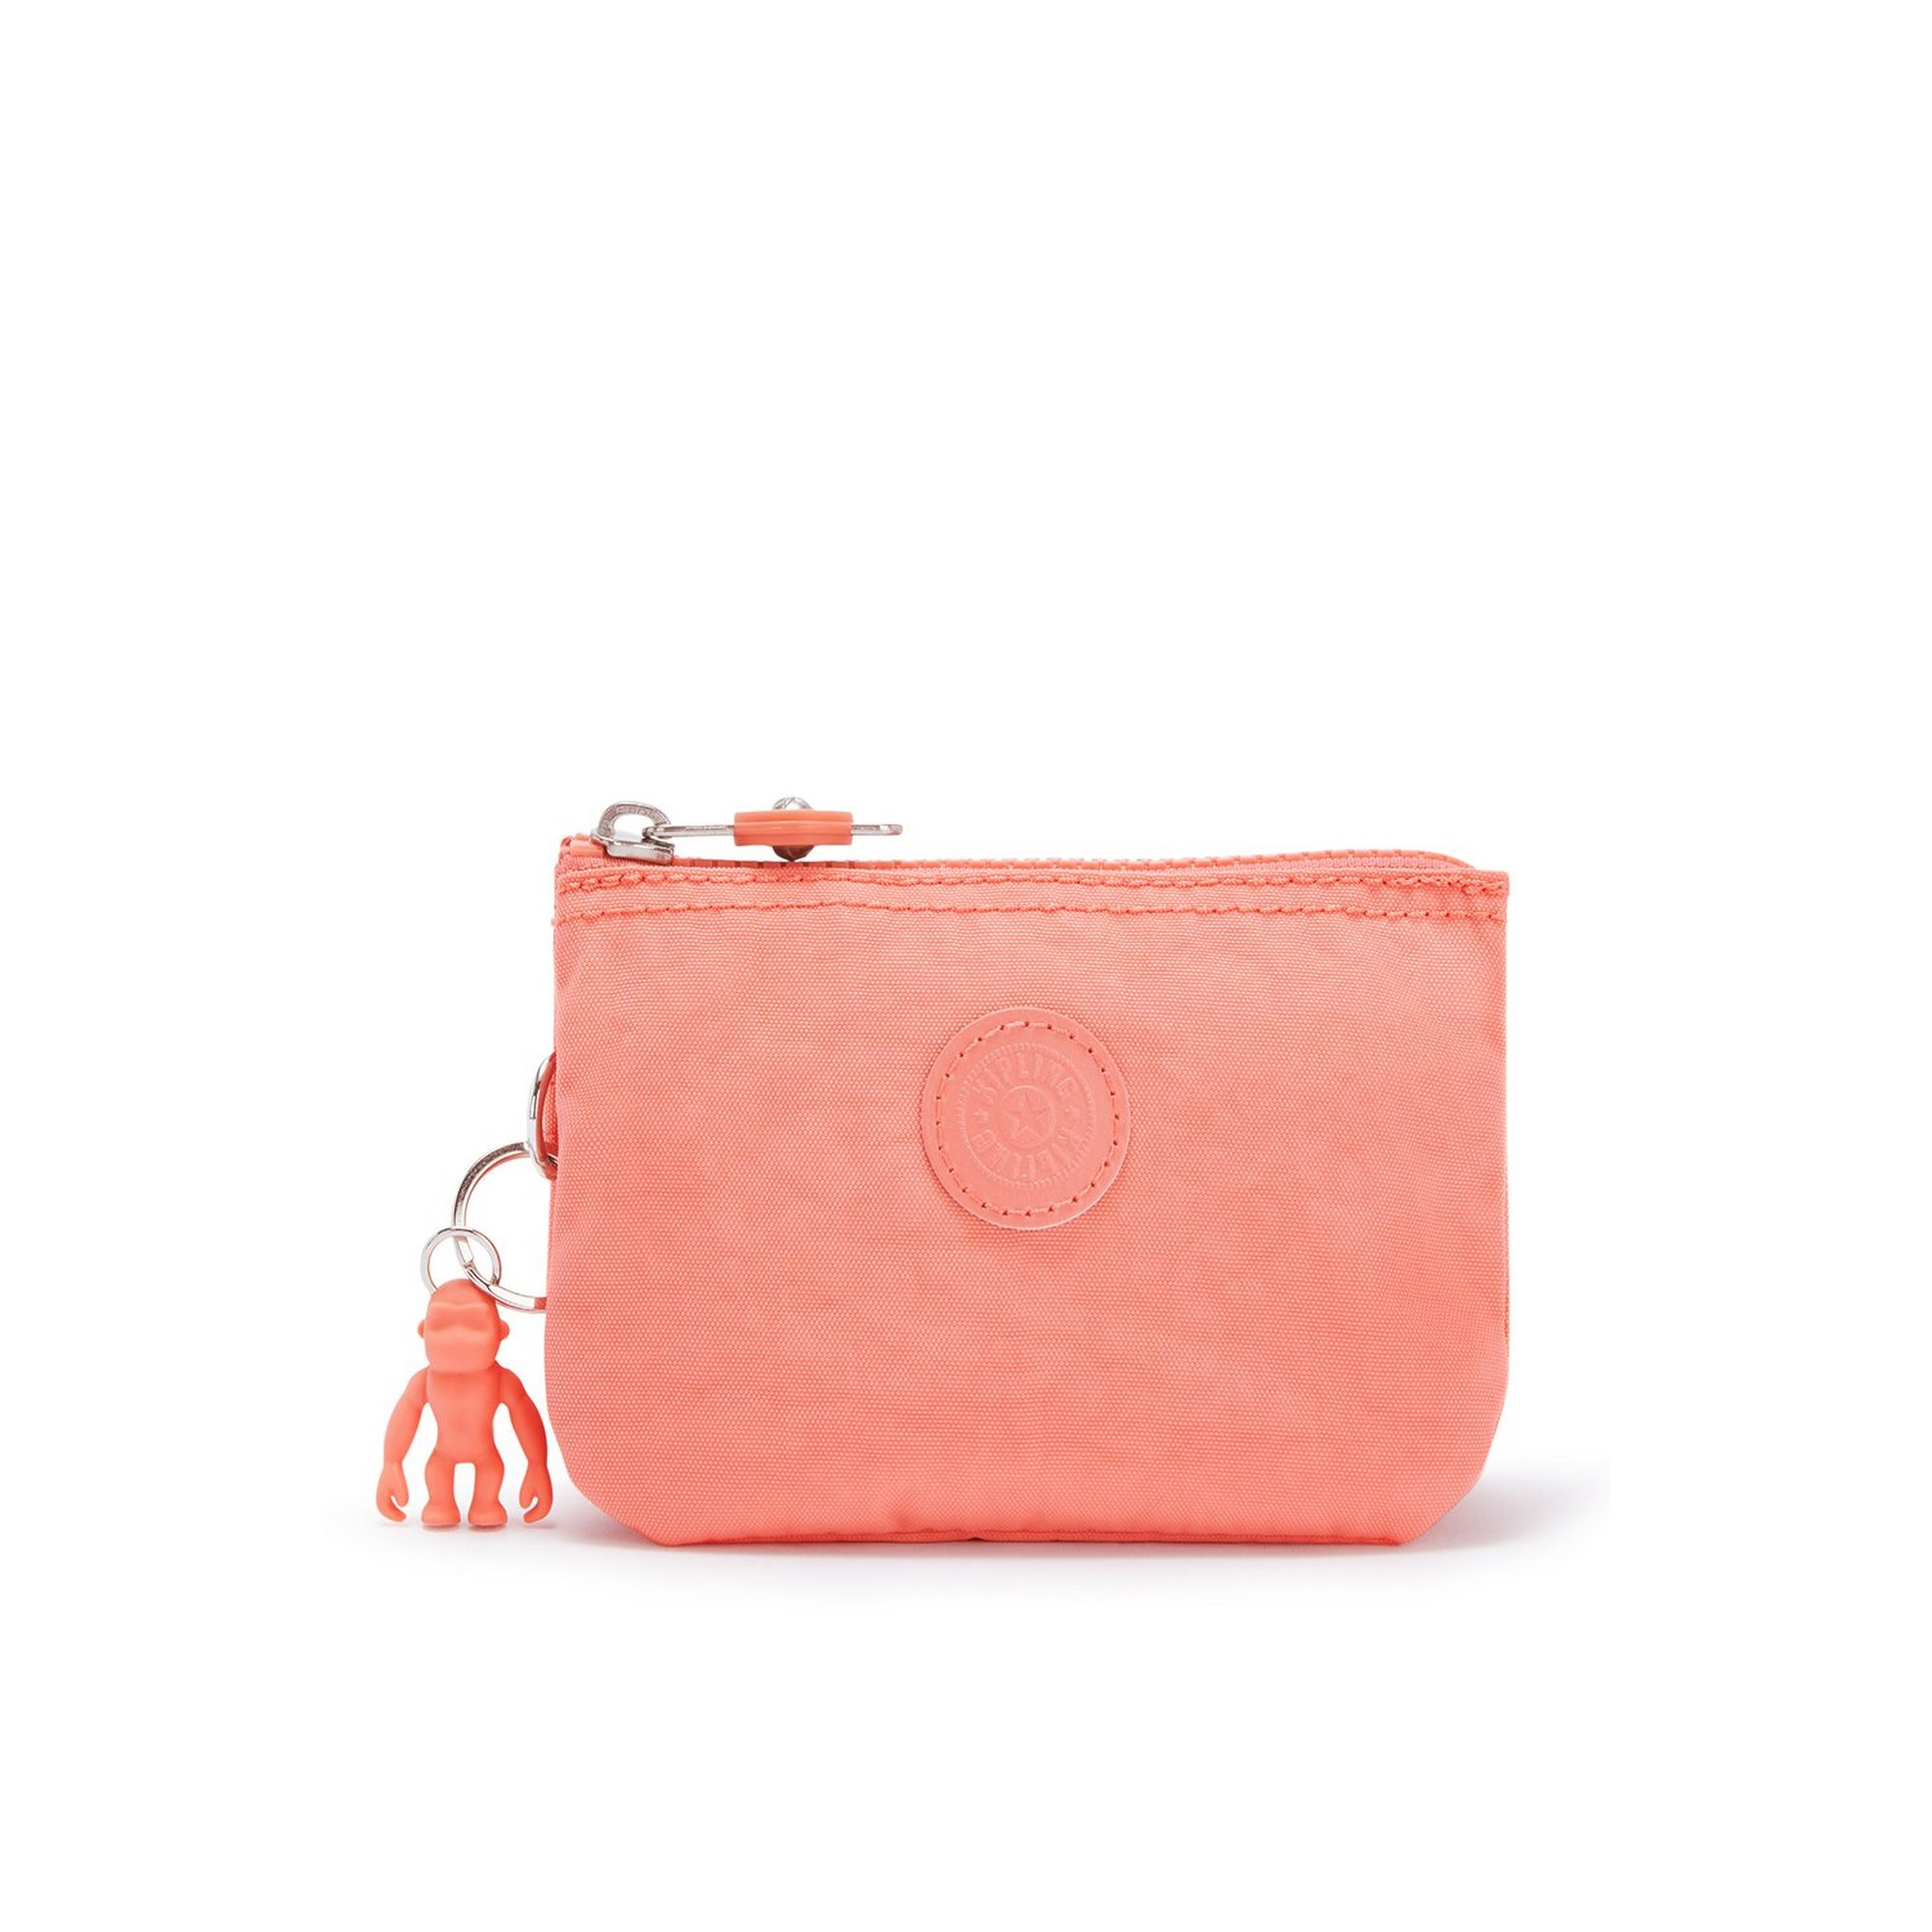 Image of Kipling Creativity Fresh Coral Purse